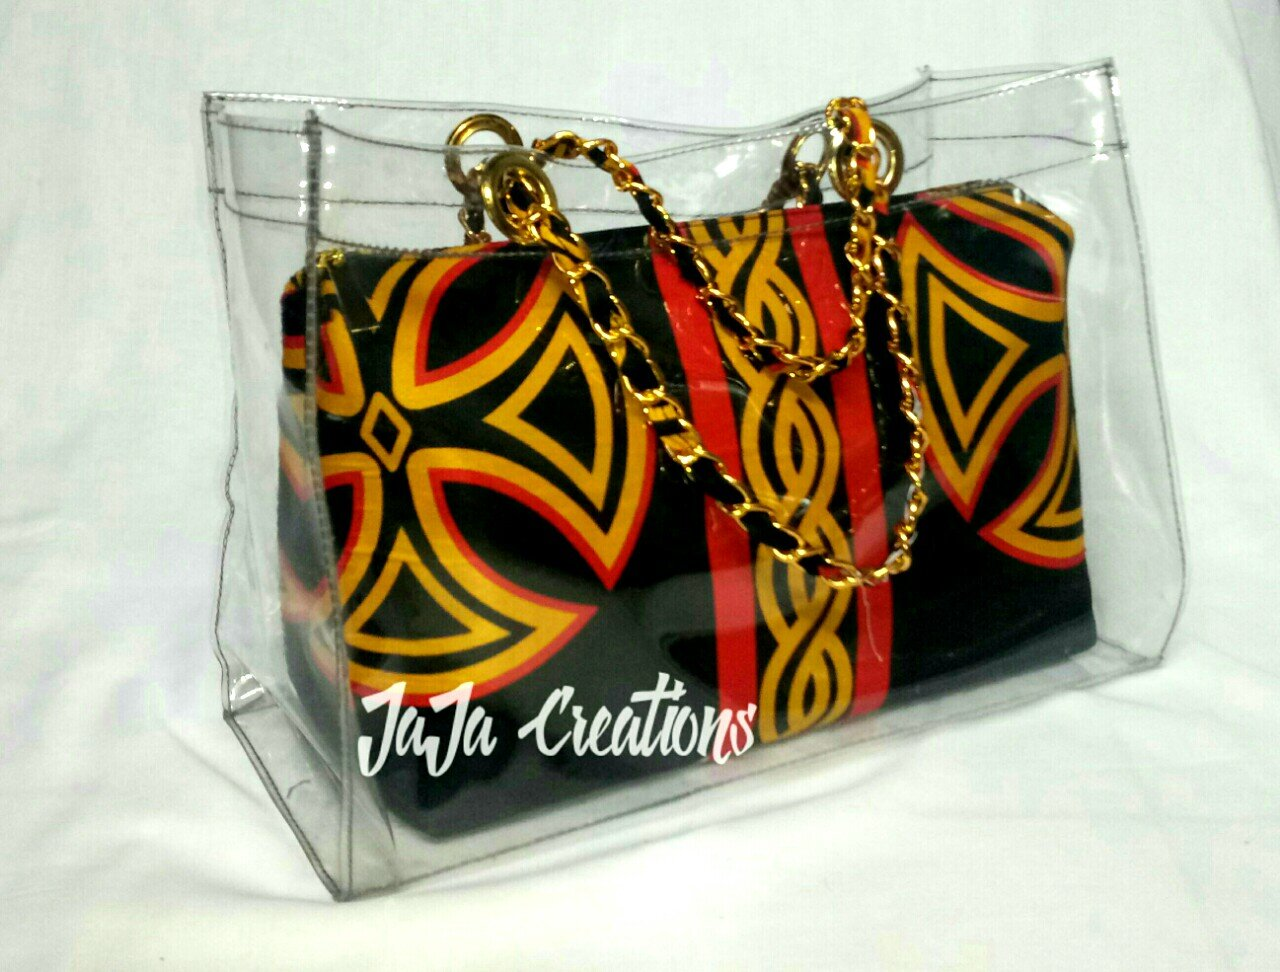 JAJA CREATIONS (The Next Big Thing) Debut Their Brand With Atoghu Accessories